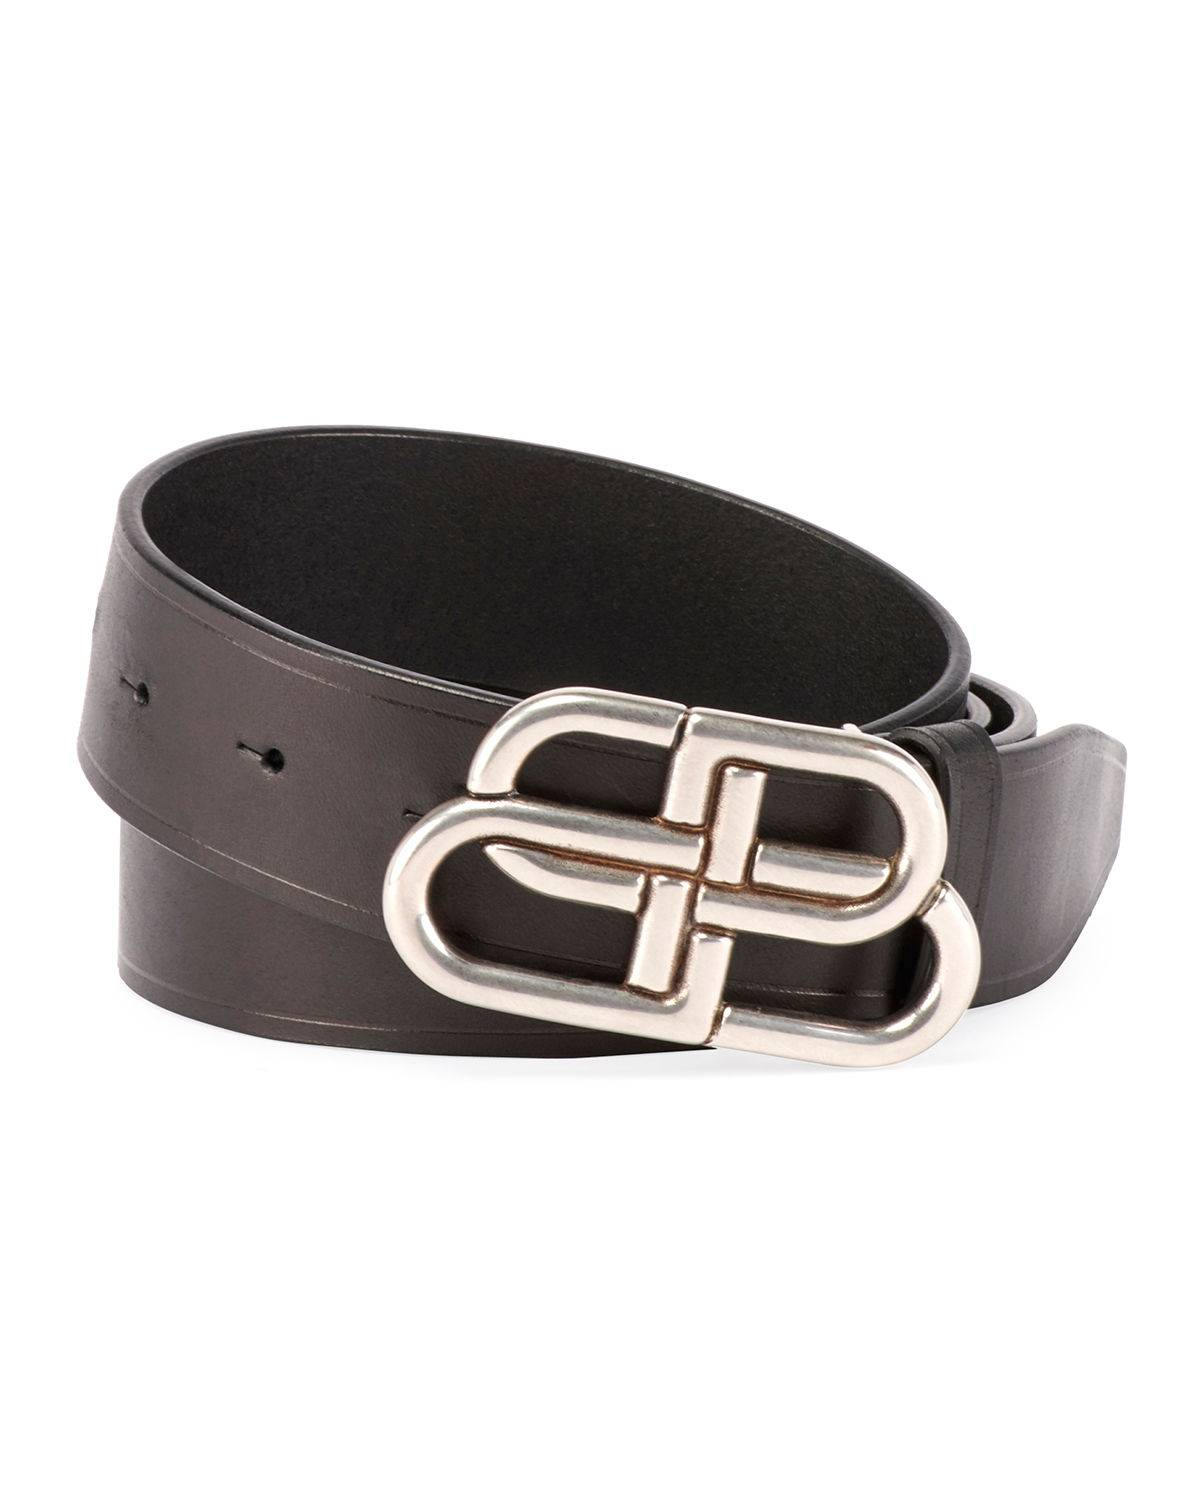 Balenciaga Men's Logo Buckle Belt - Size: 42in / 105cm